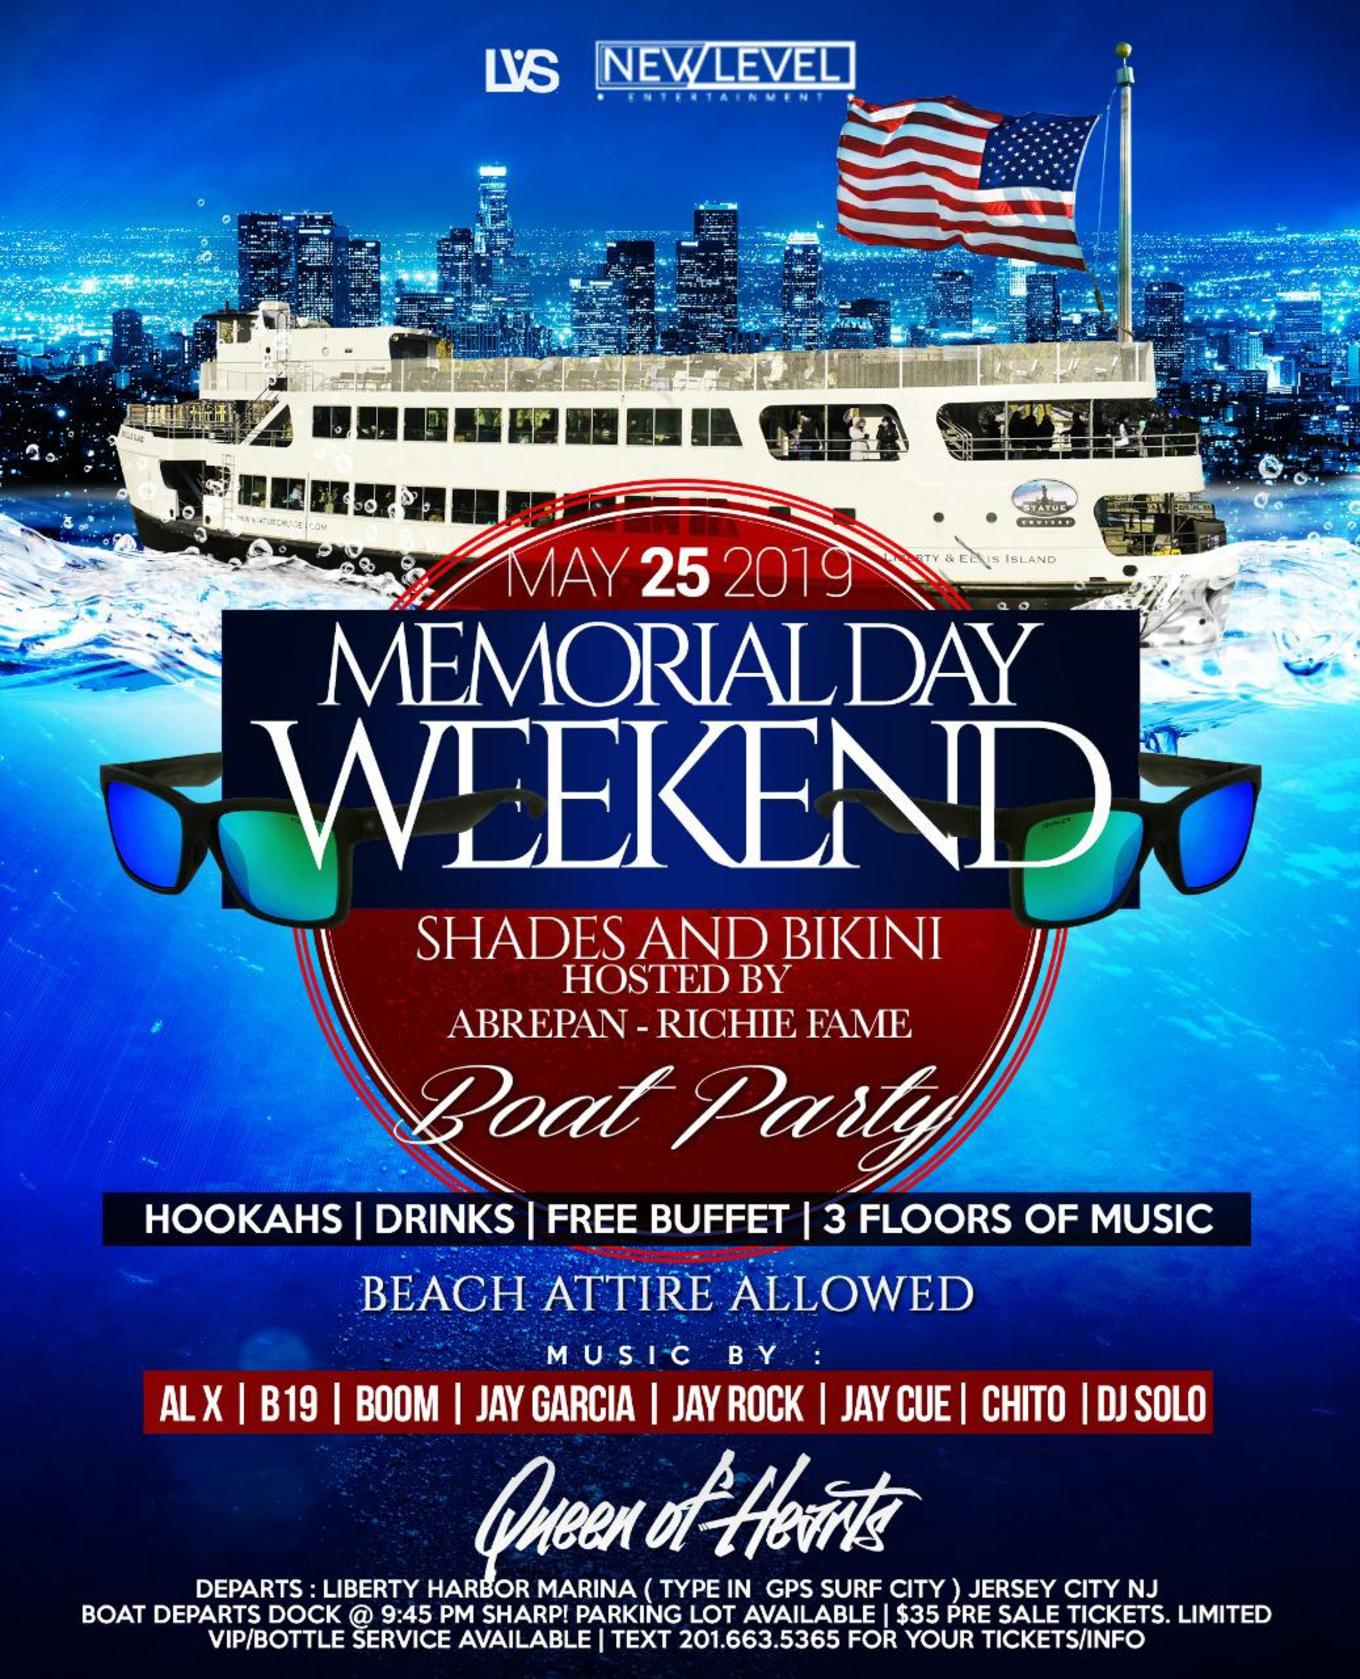 Memorial Day Weekend Boat Party Cruise At Liberty Harbor